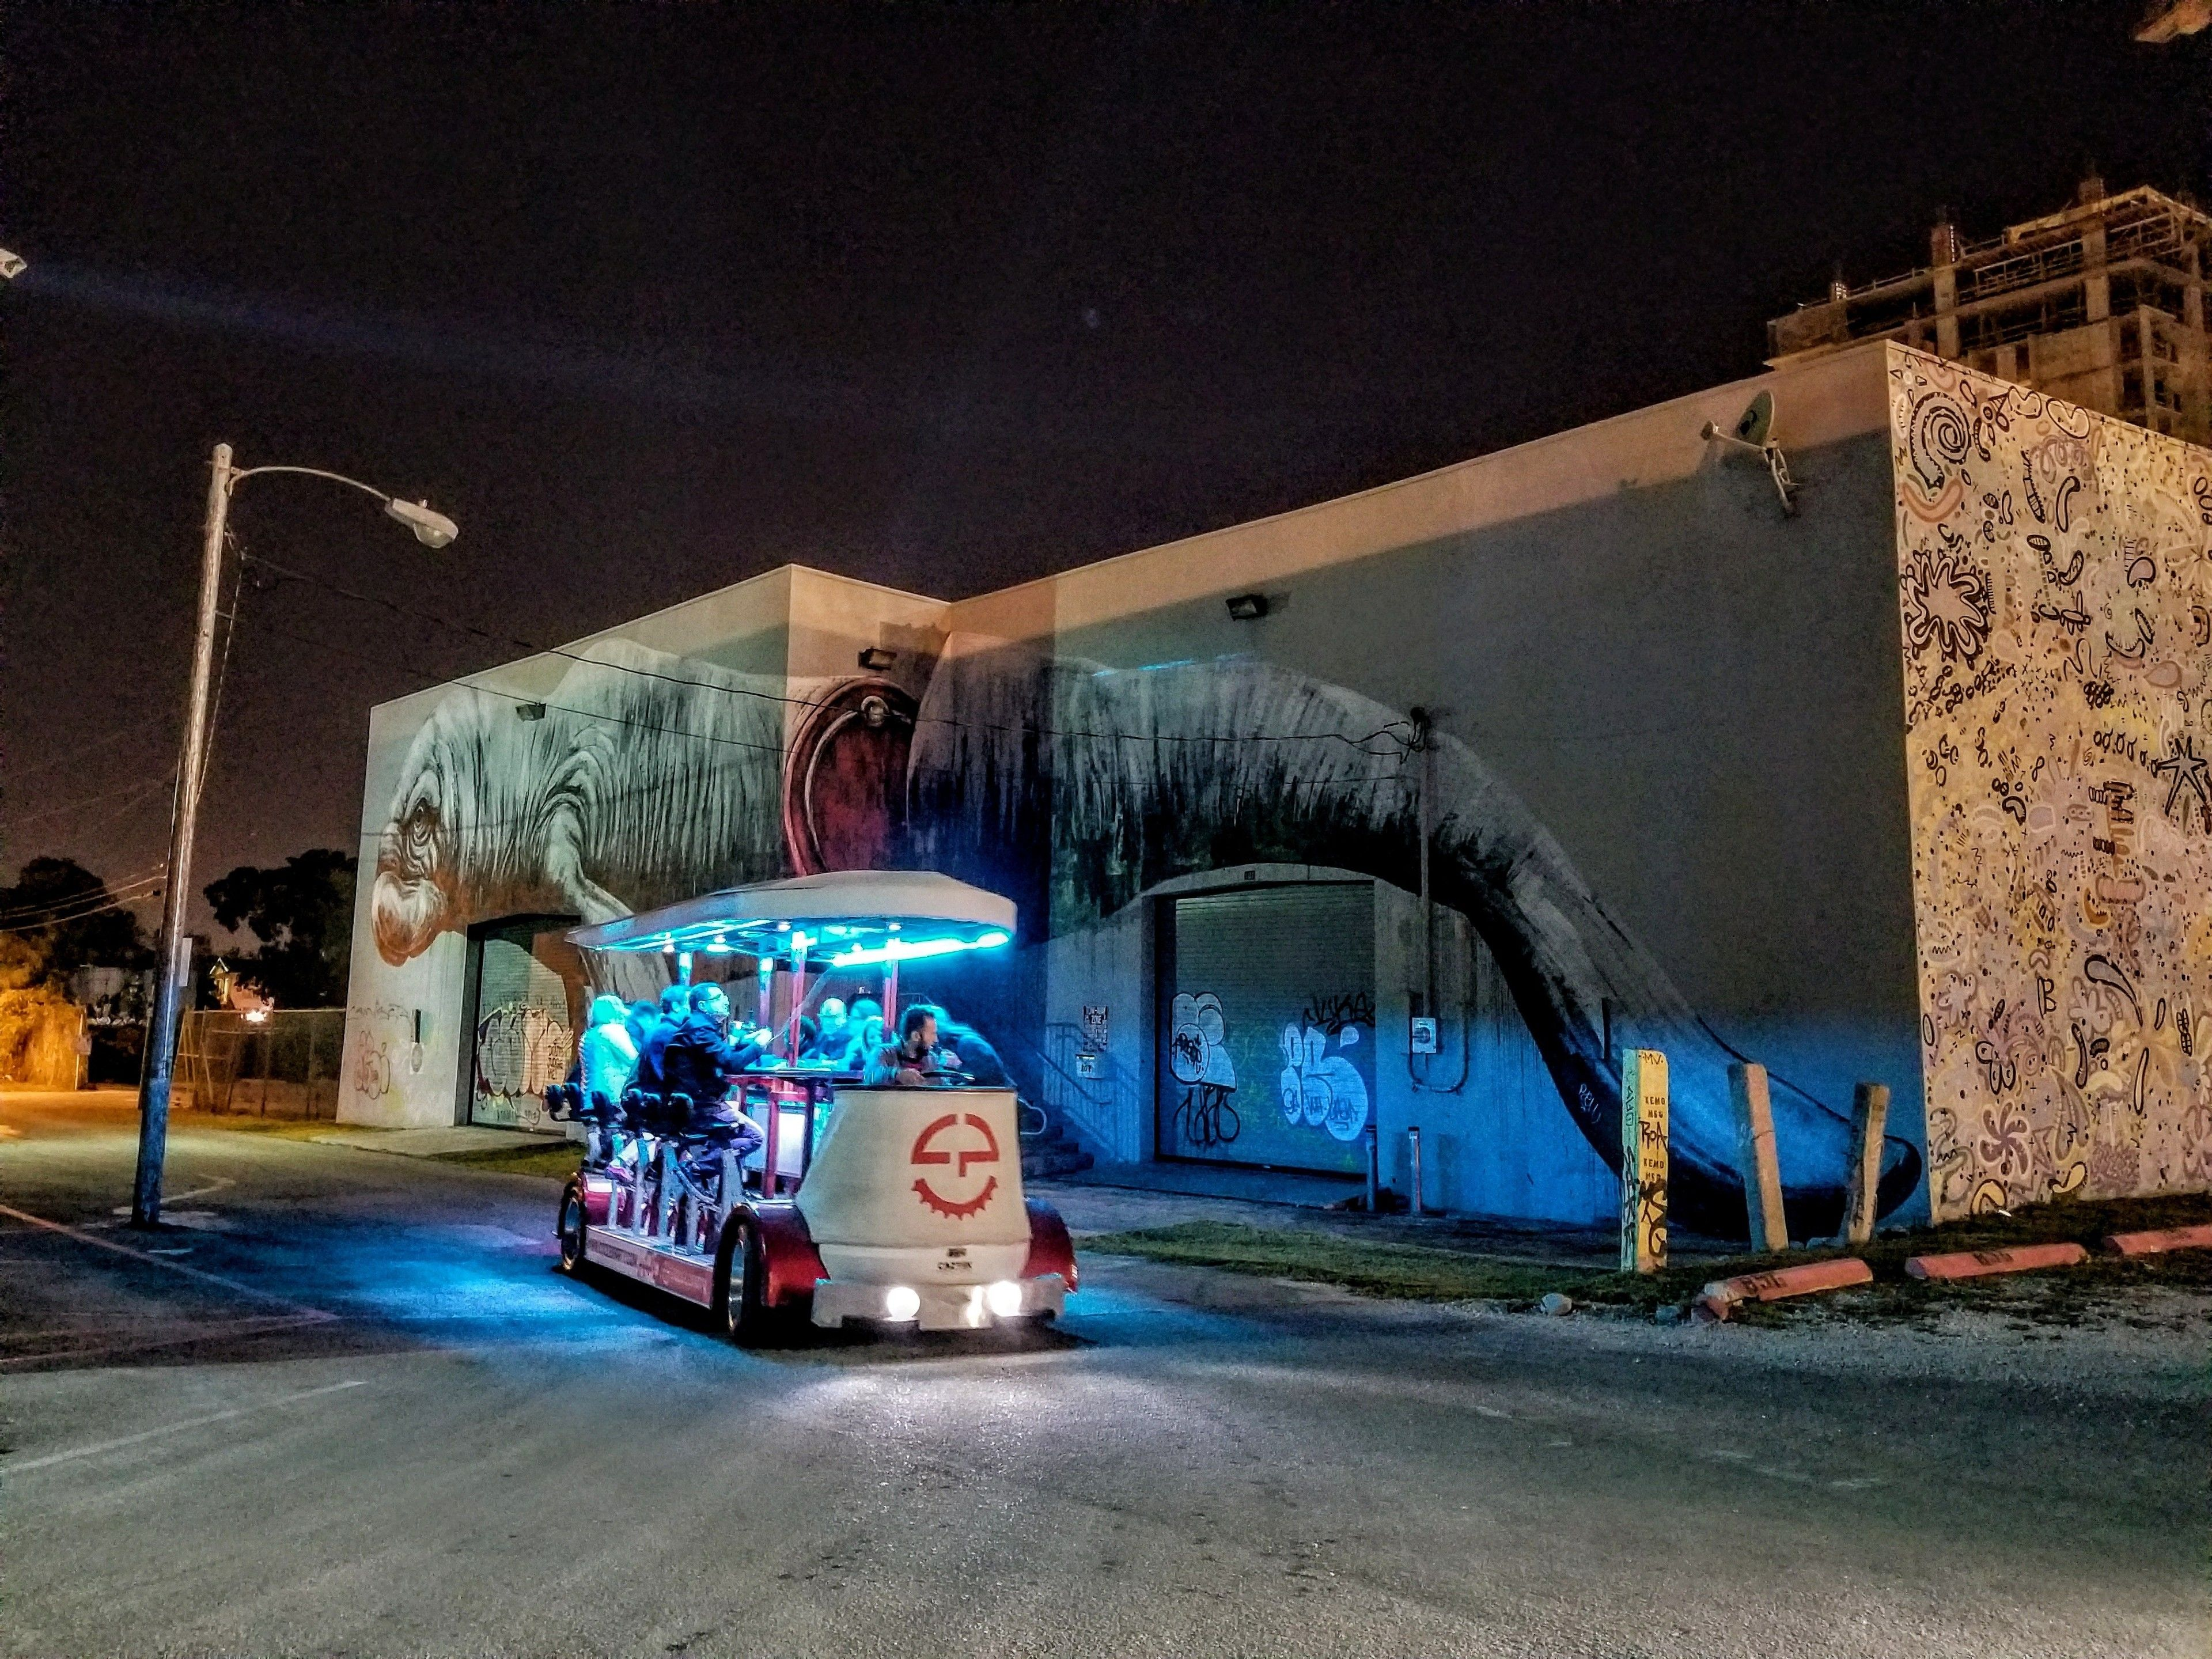 Night view of the Cycle Party bike in Wynwood